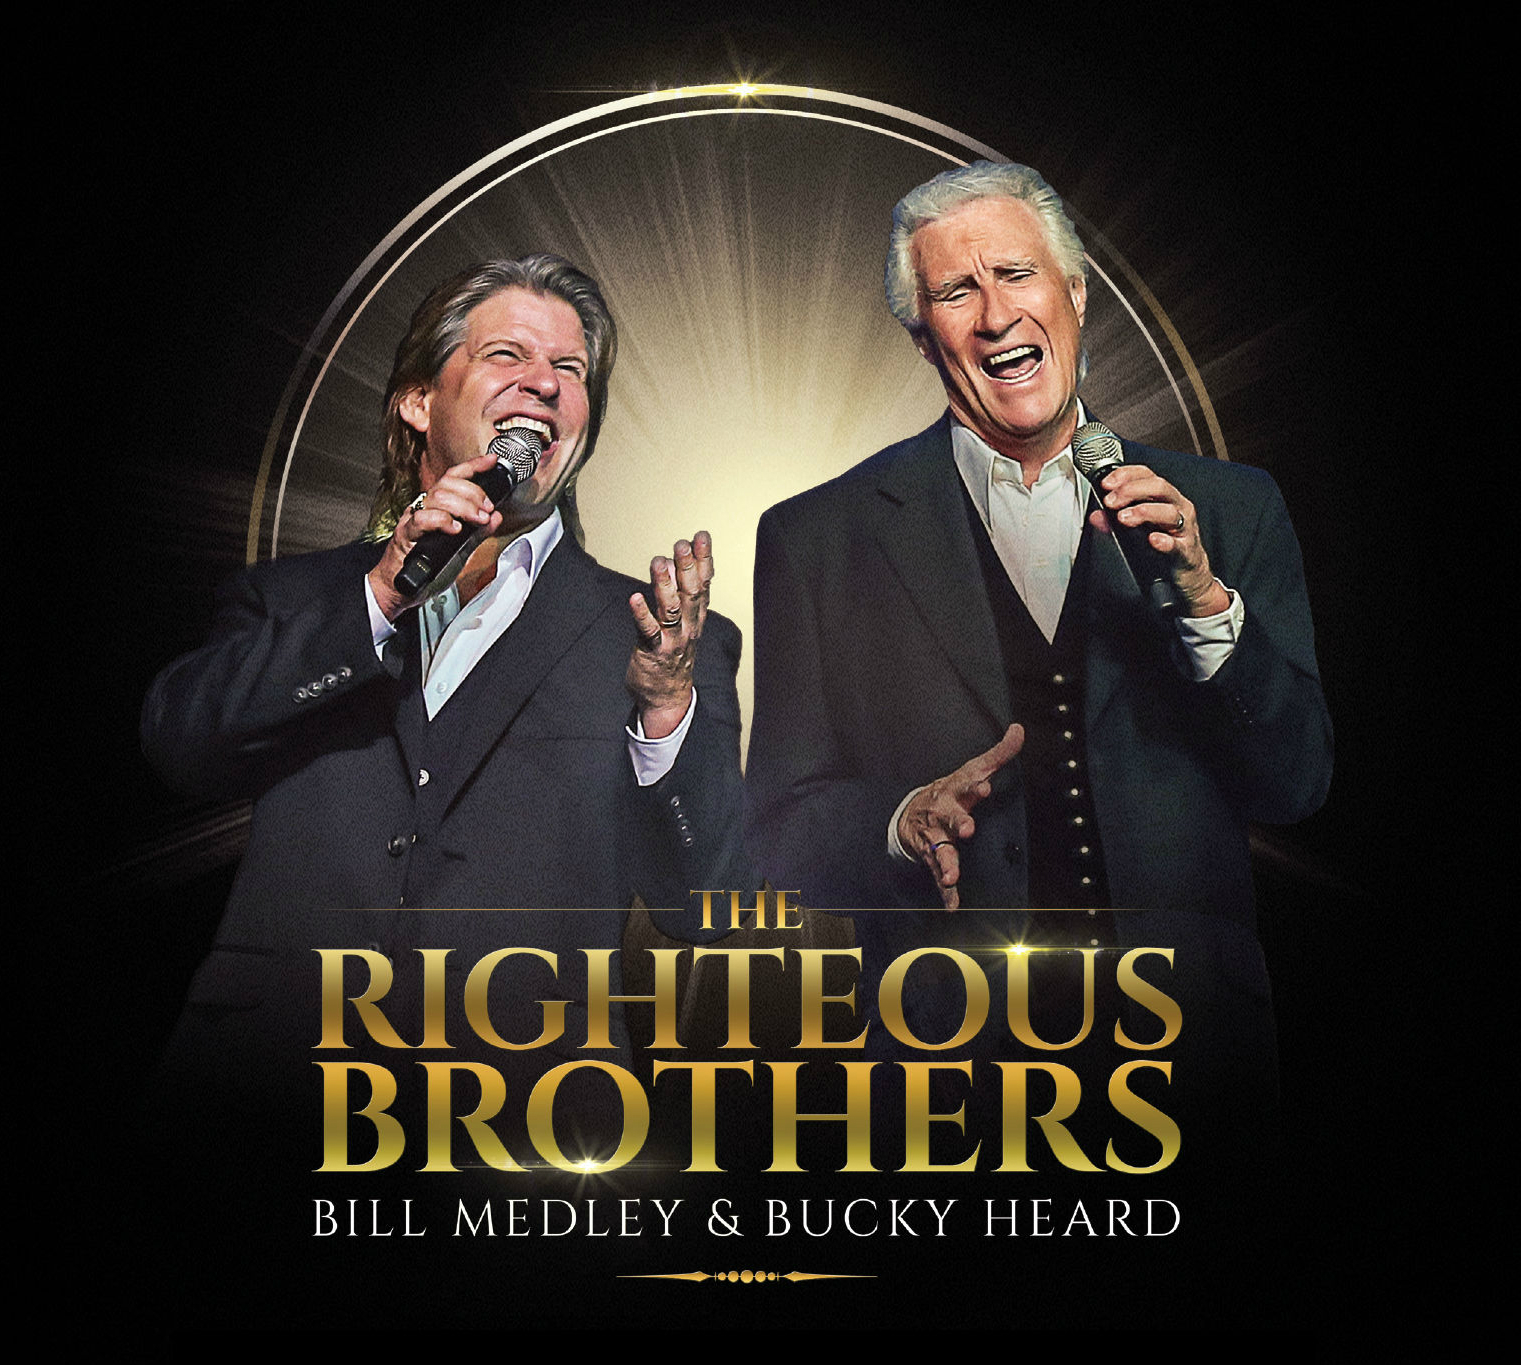 The Righteous Brothers with Bill Medley & Bucky Heard